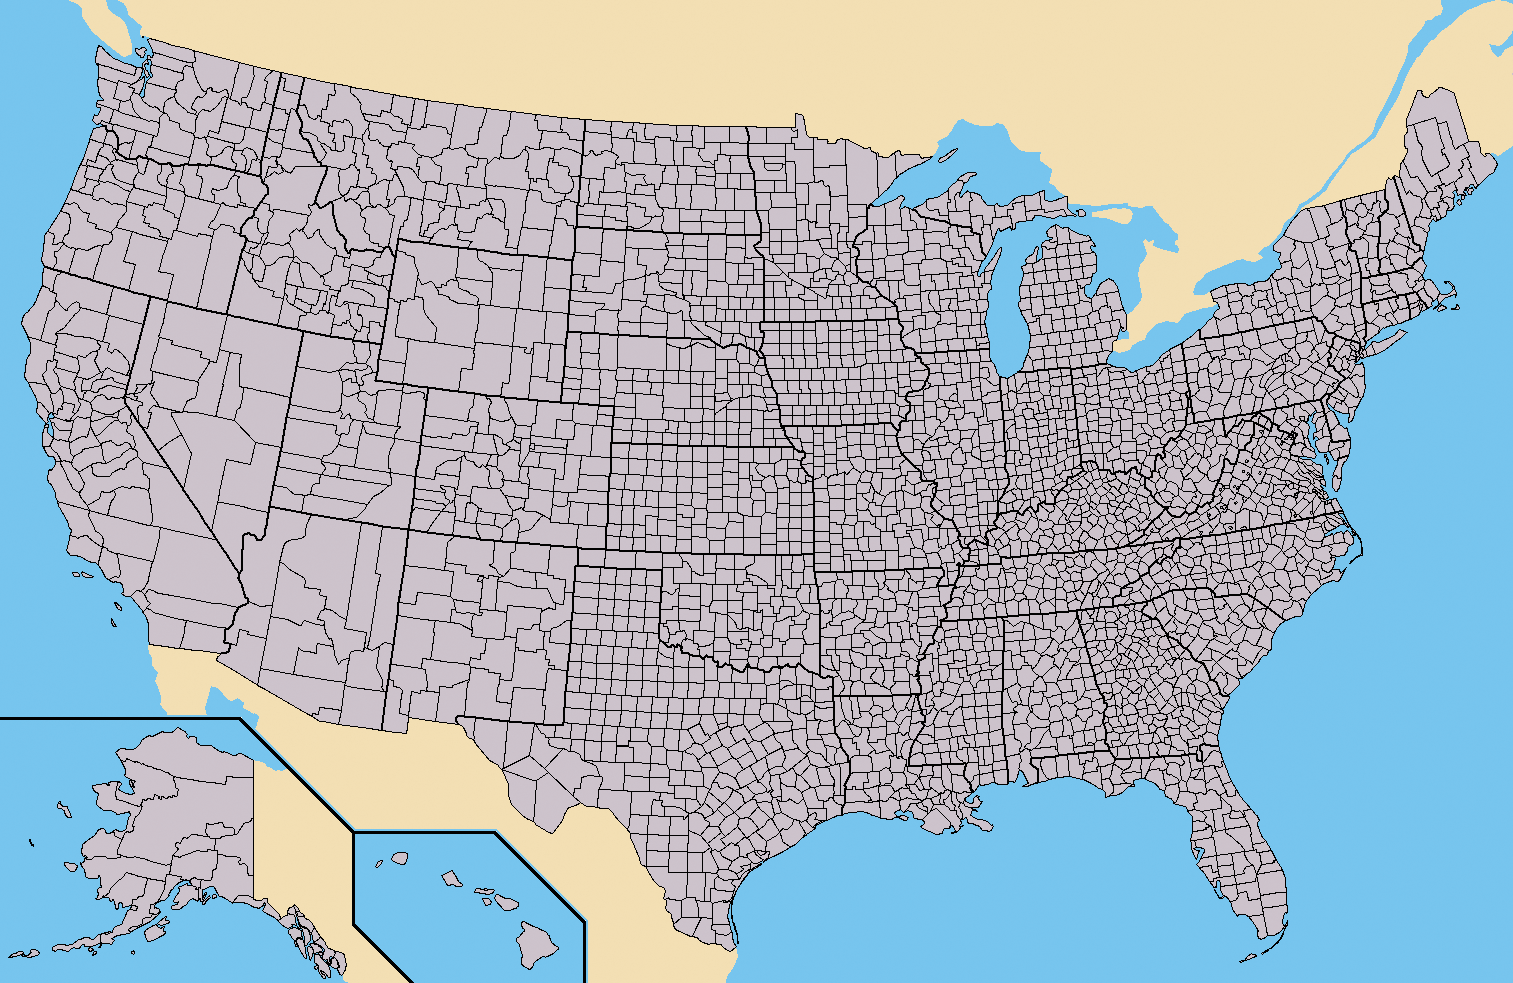 FileMap Of USA With County Outlinespng Wikimedia Commons - United states counties map